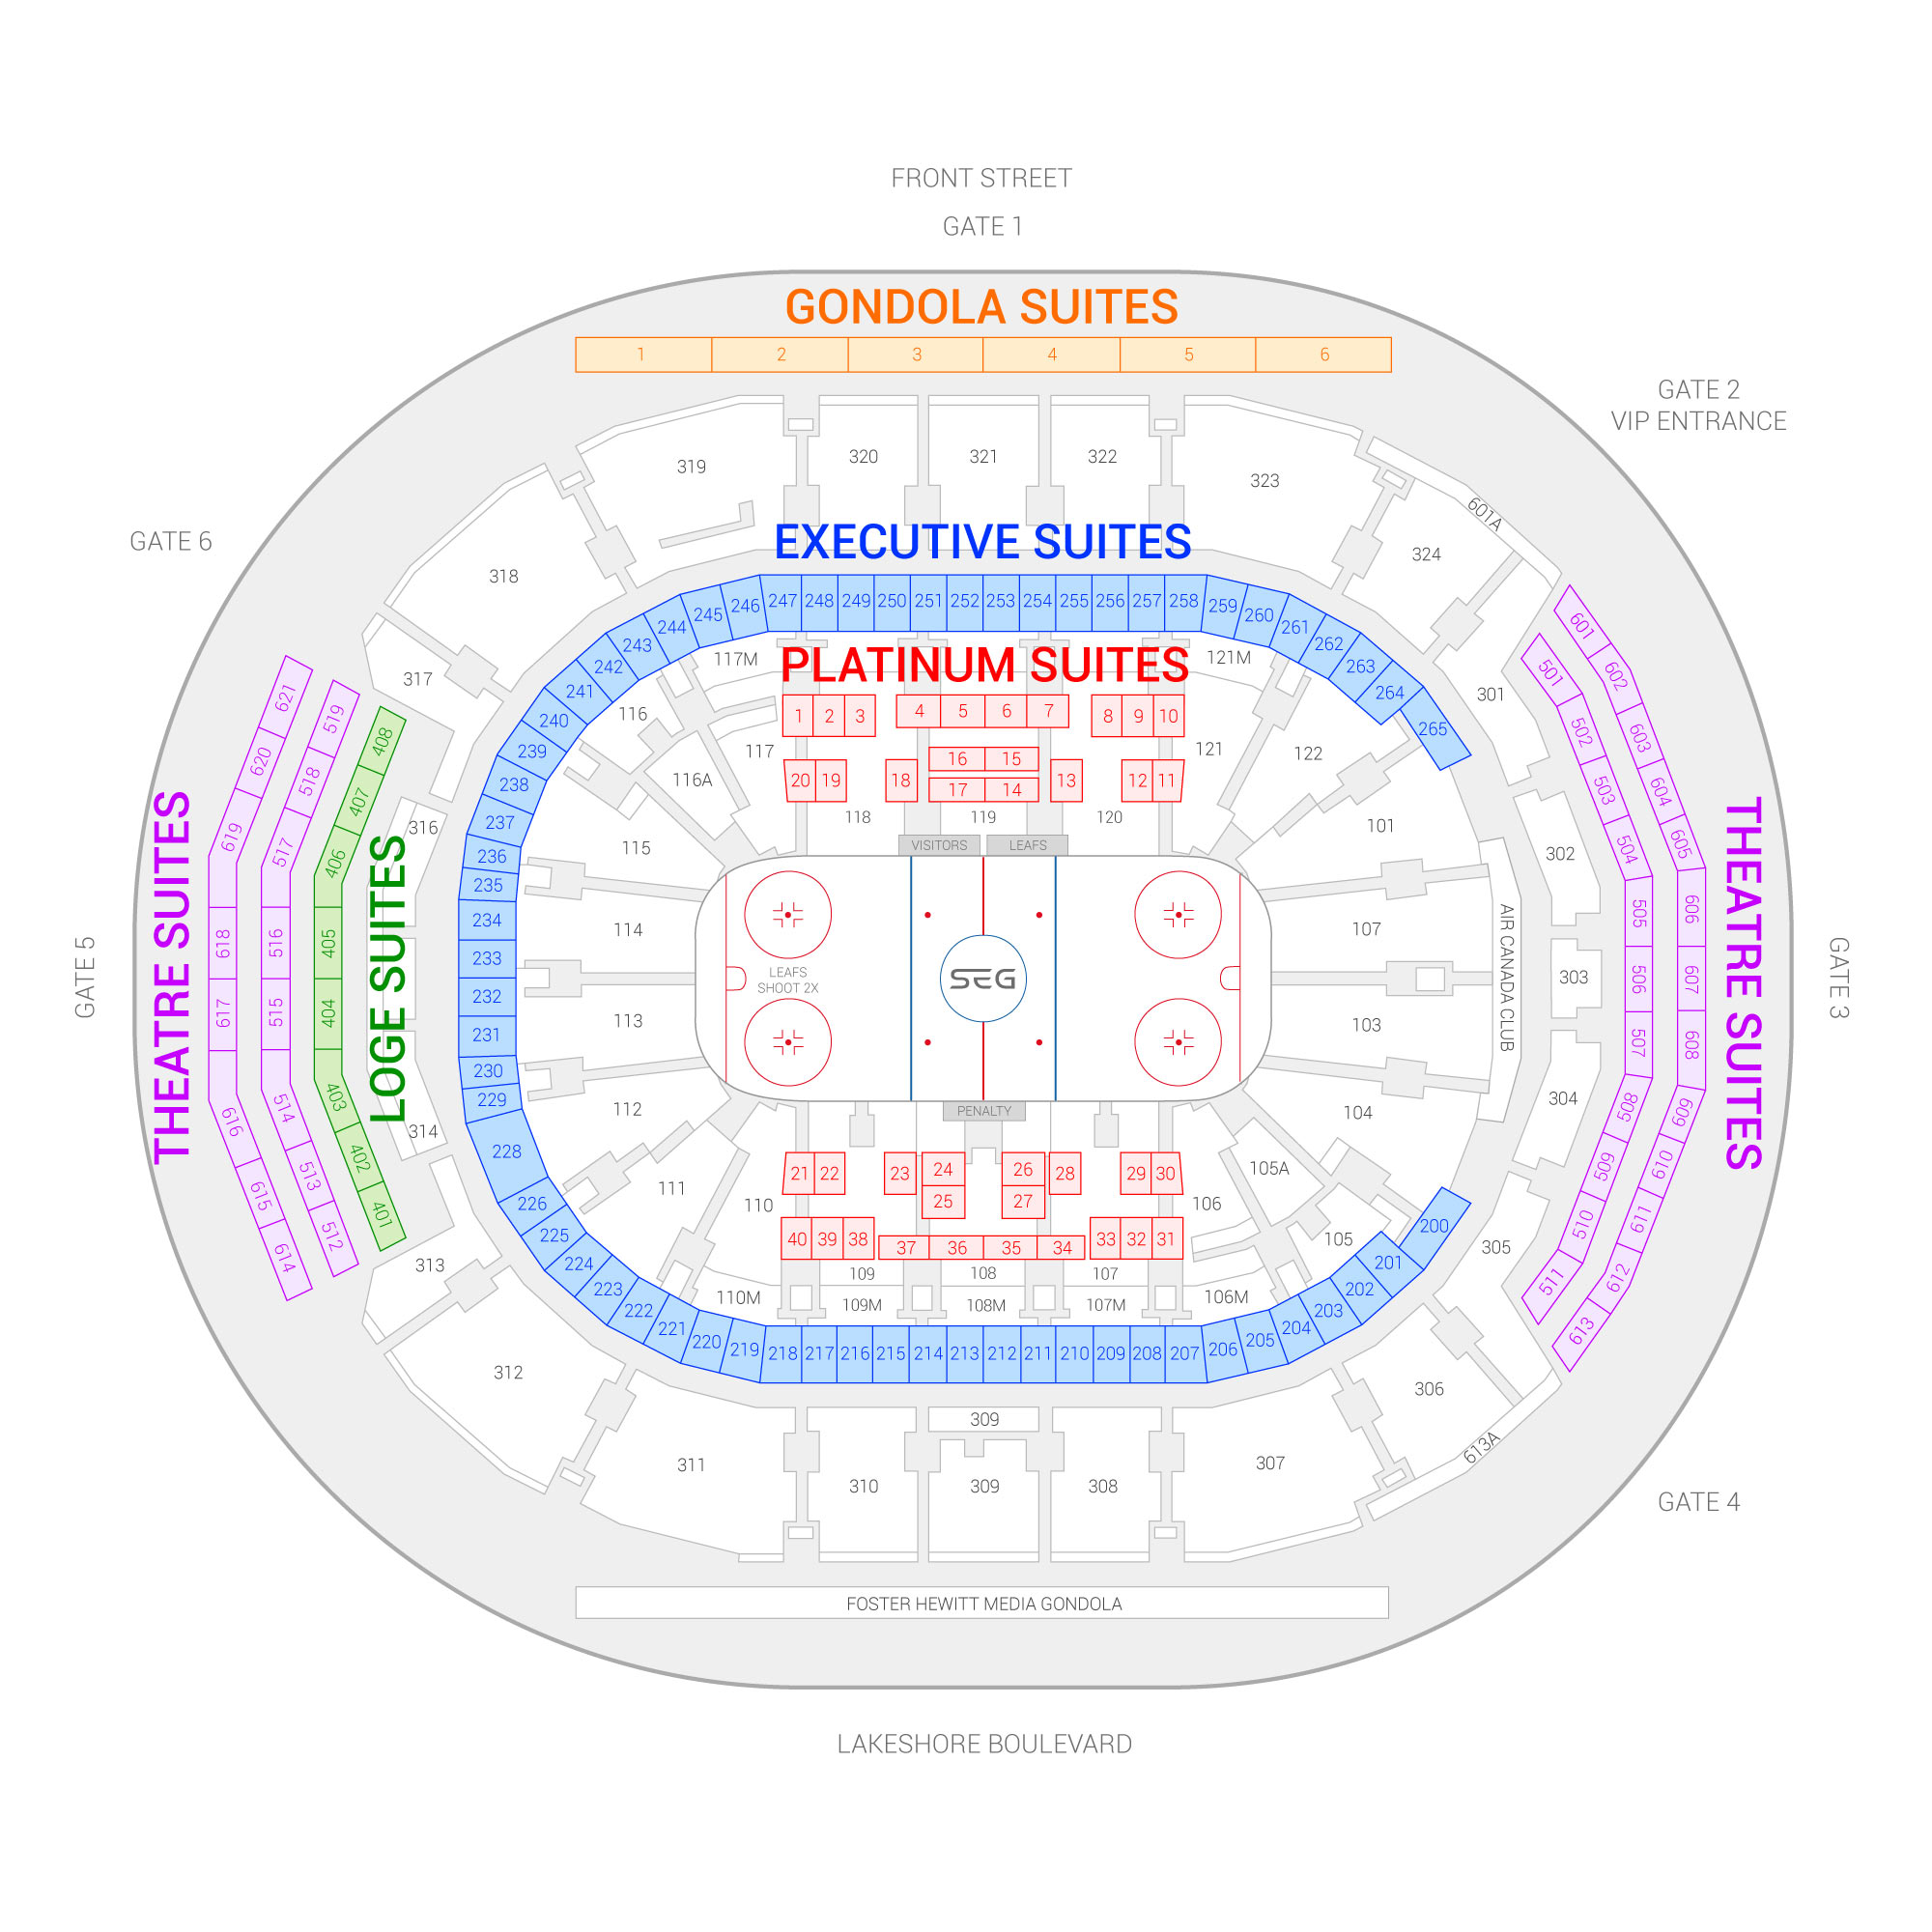 Scotiabank Arena / Toronto Maple Leafs Suite Map and Seating Chart